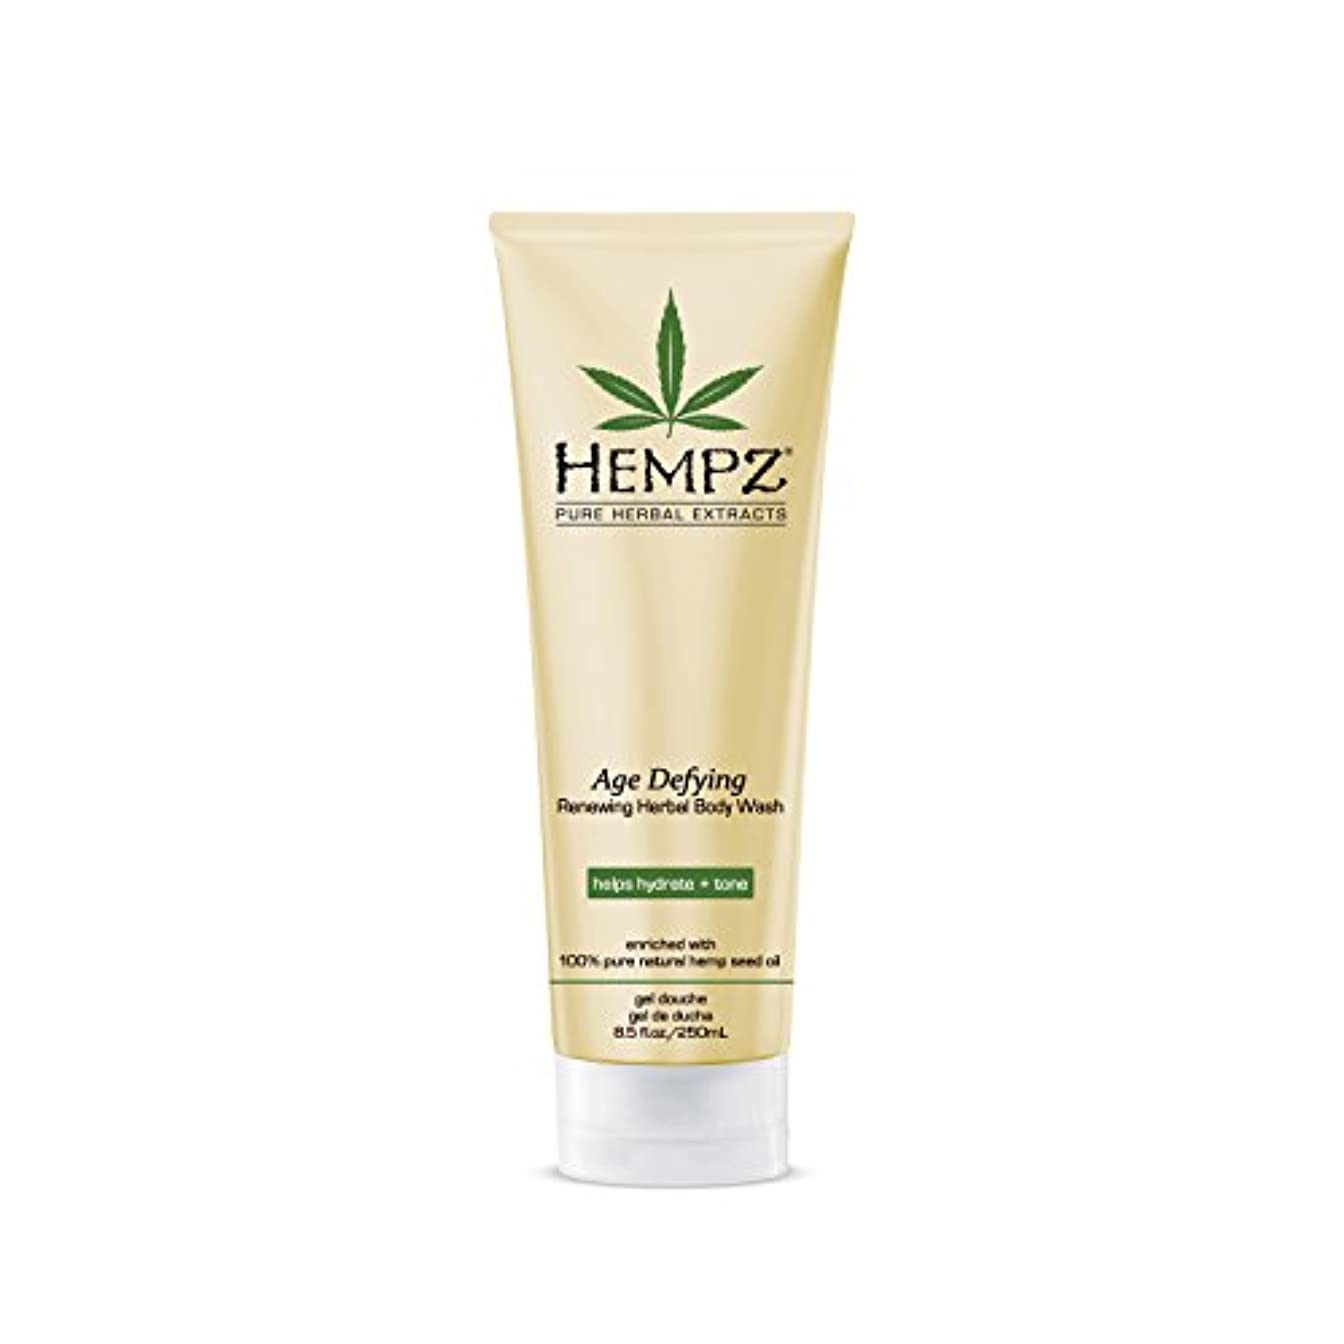 回転させる欠席芽Hempz Age Defying Herbal Body Wash, Off White, Vanilla/Musk, 8.5 Fluid Ounce